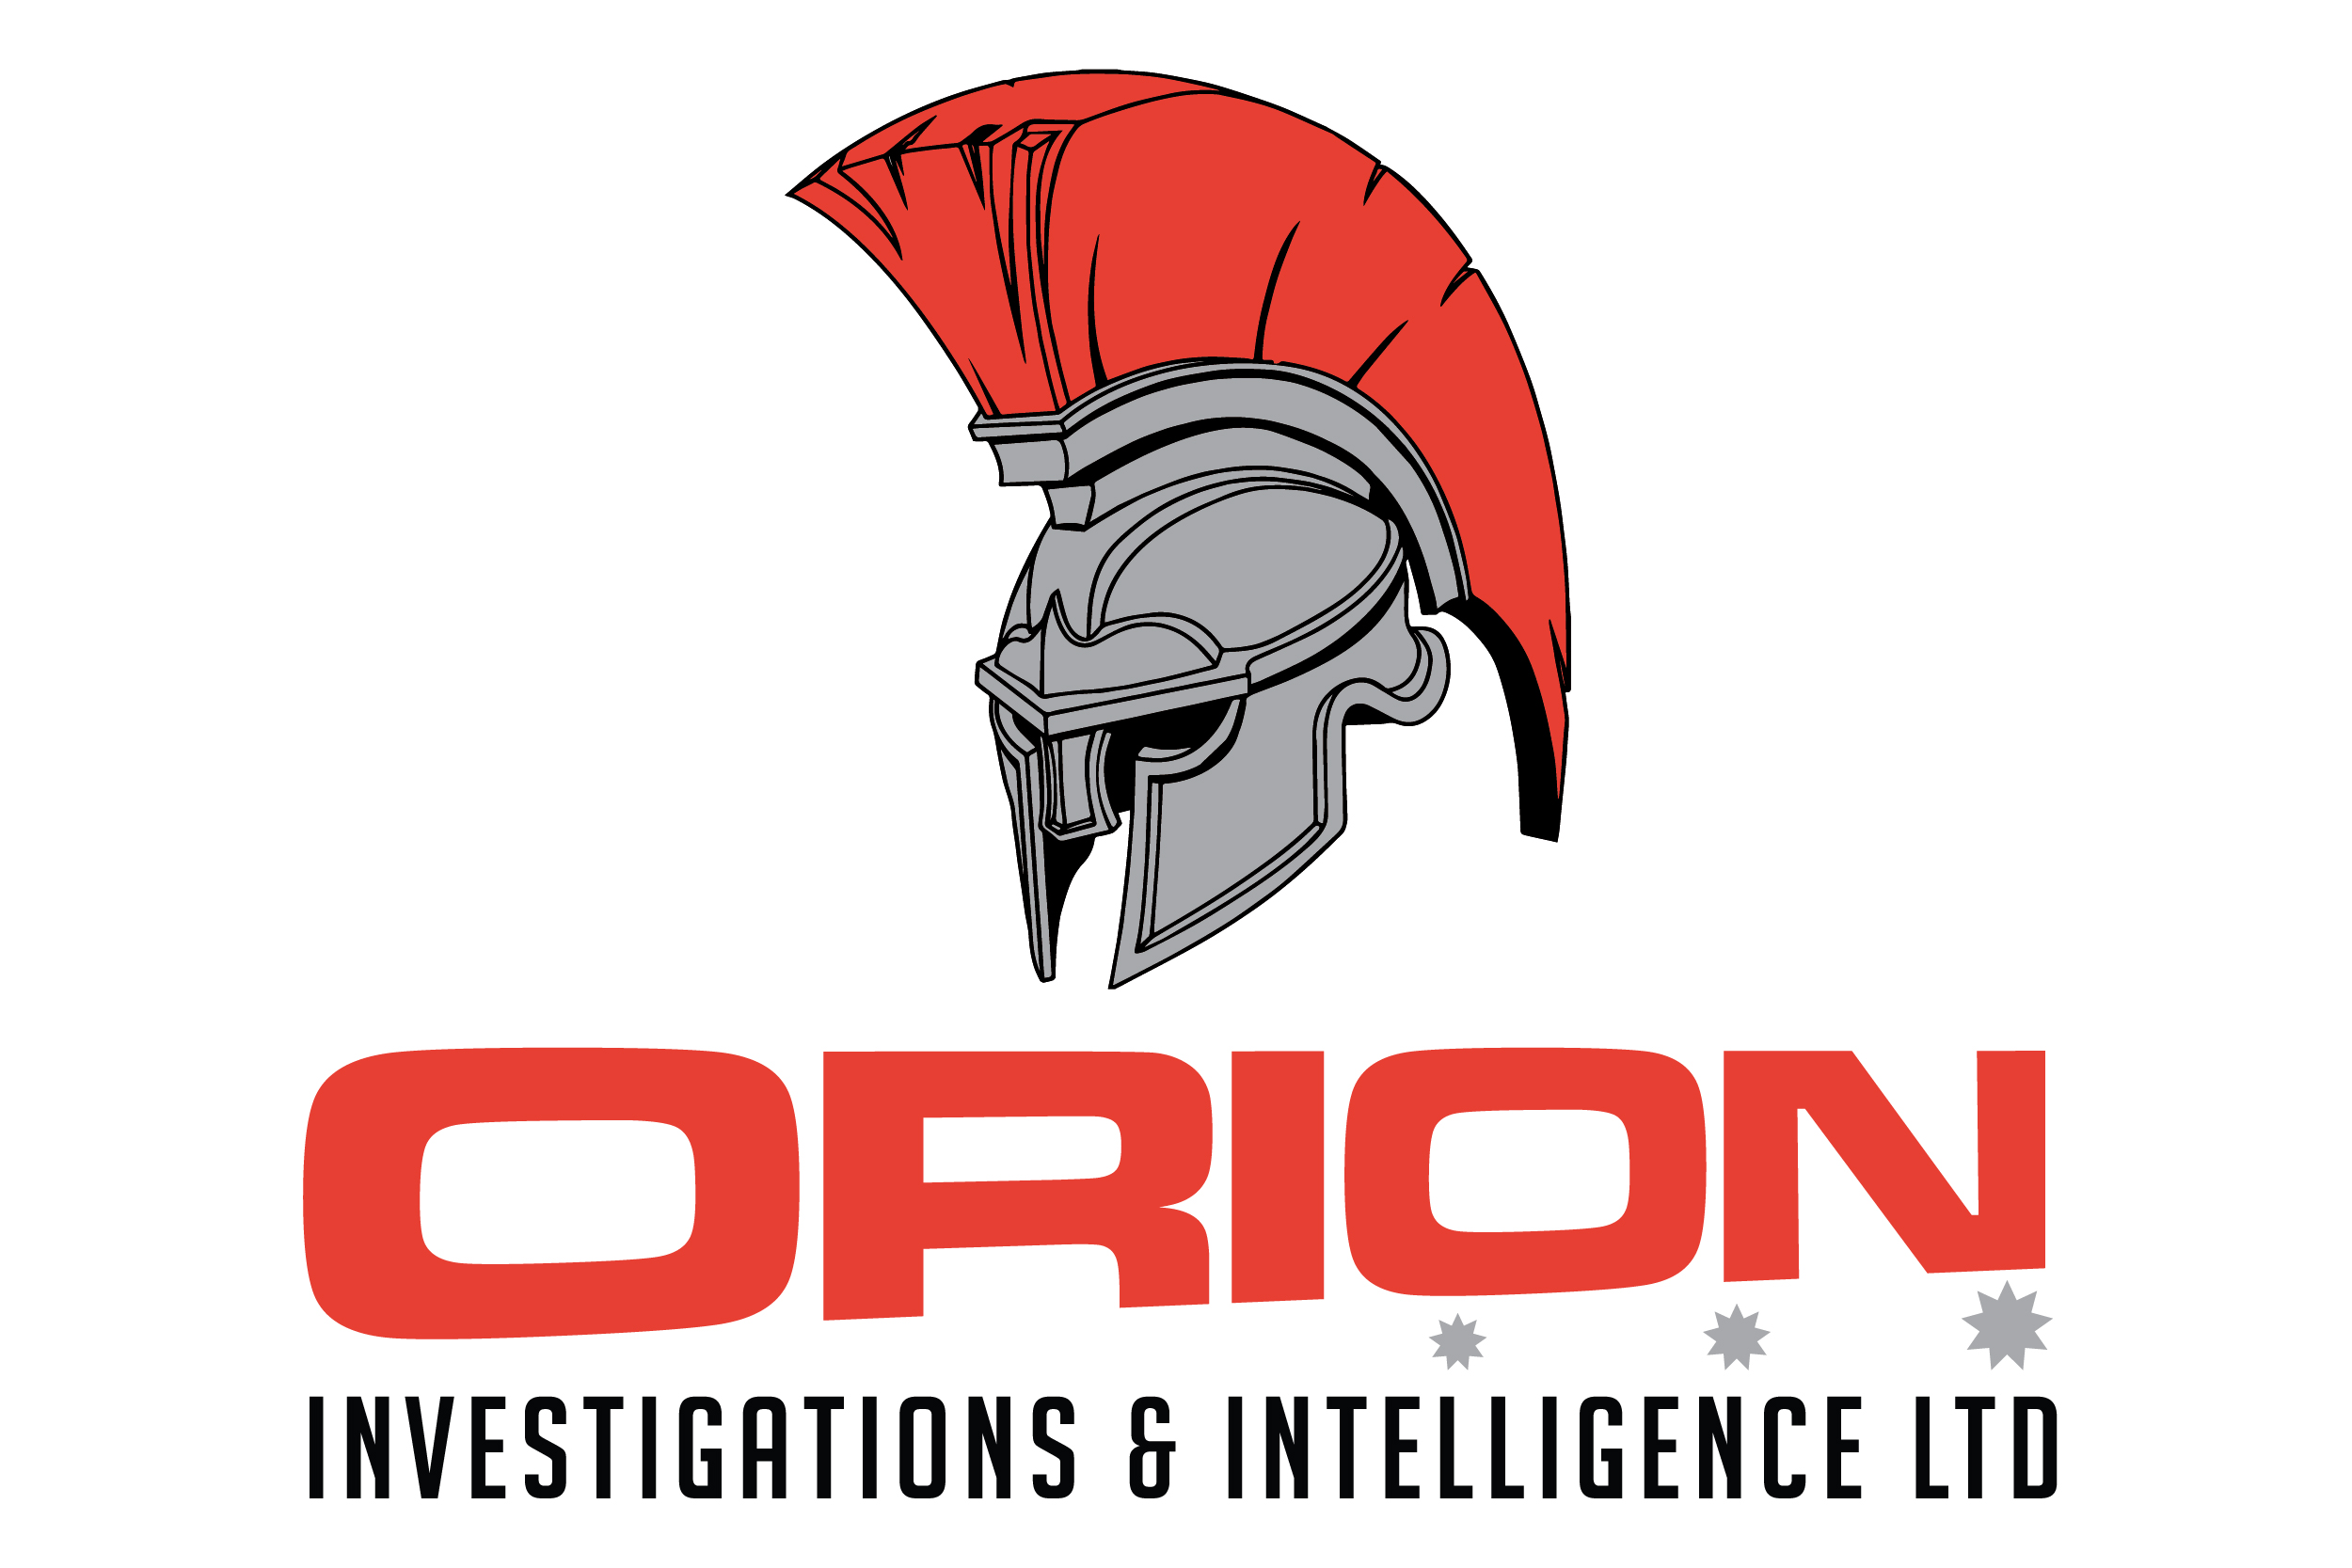 Orion Investigations & Intelligence Ltd